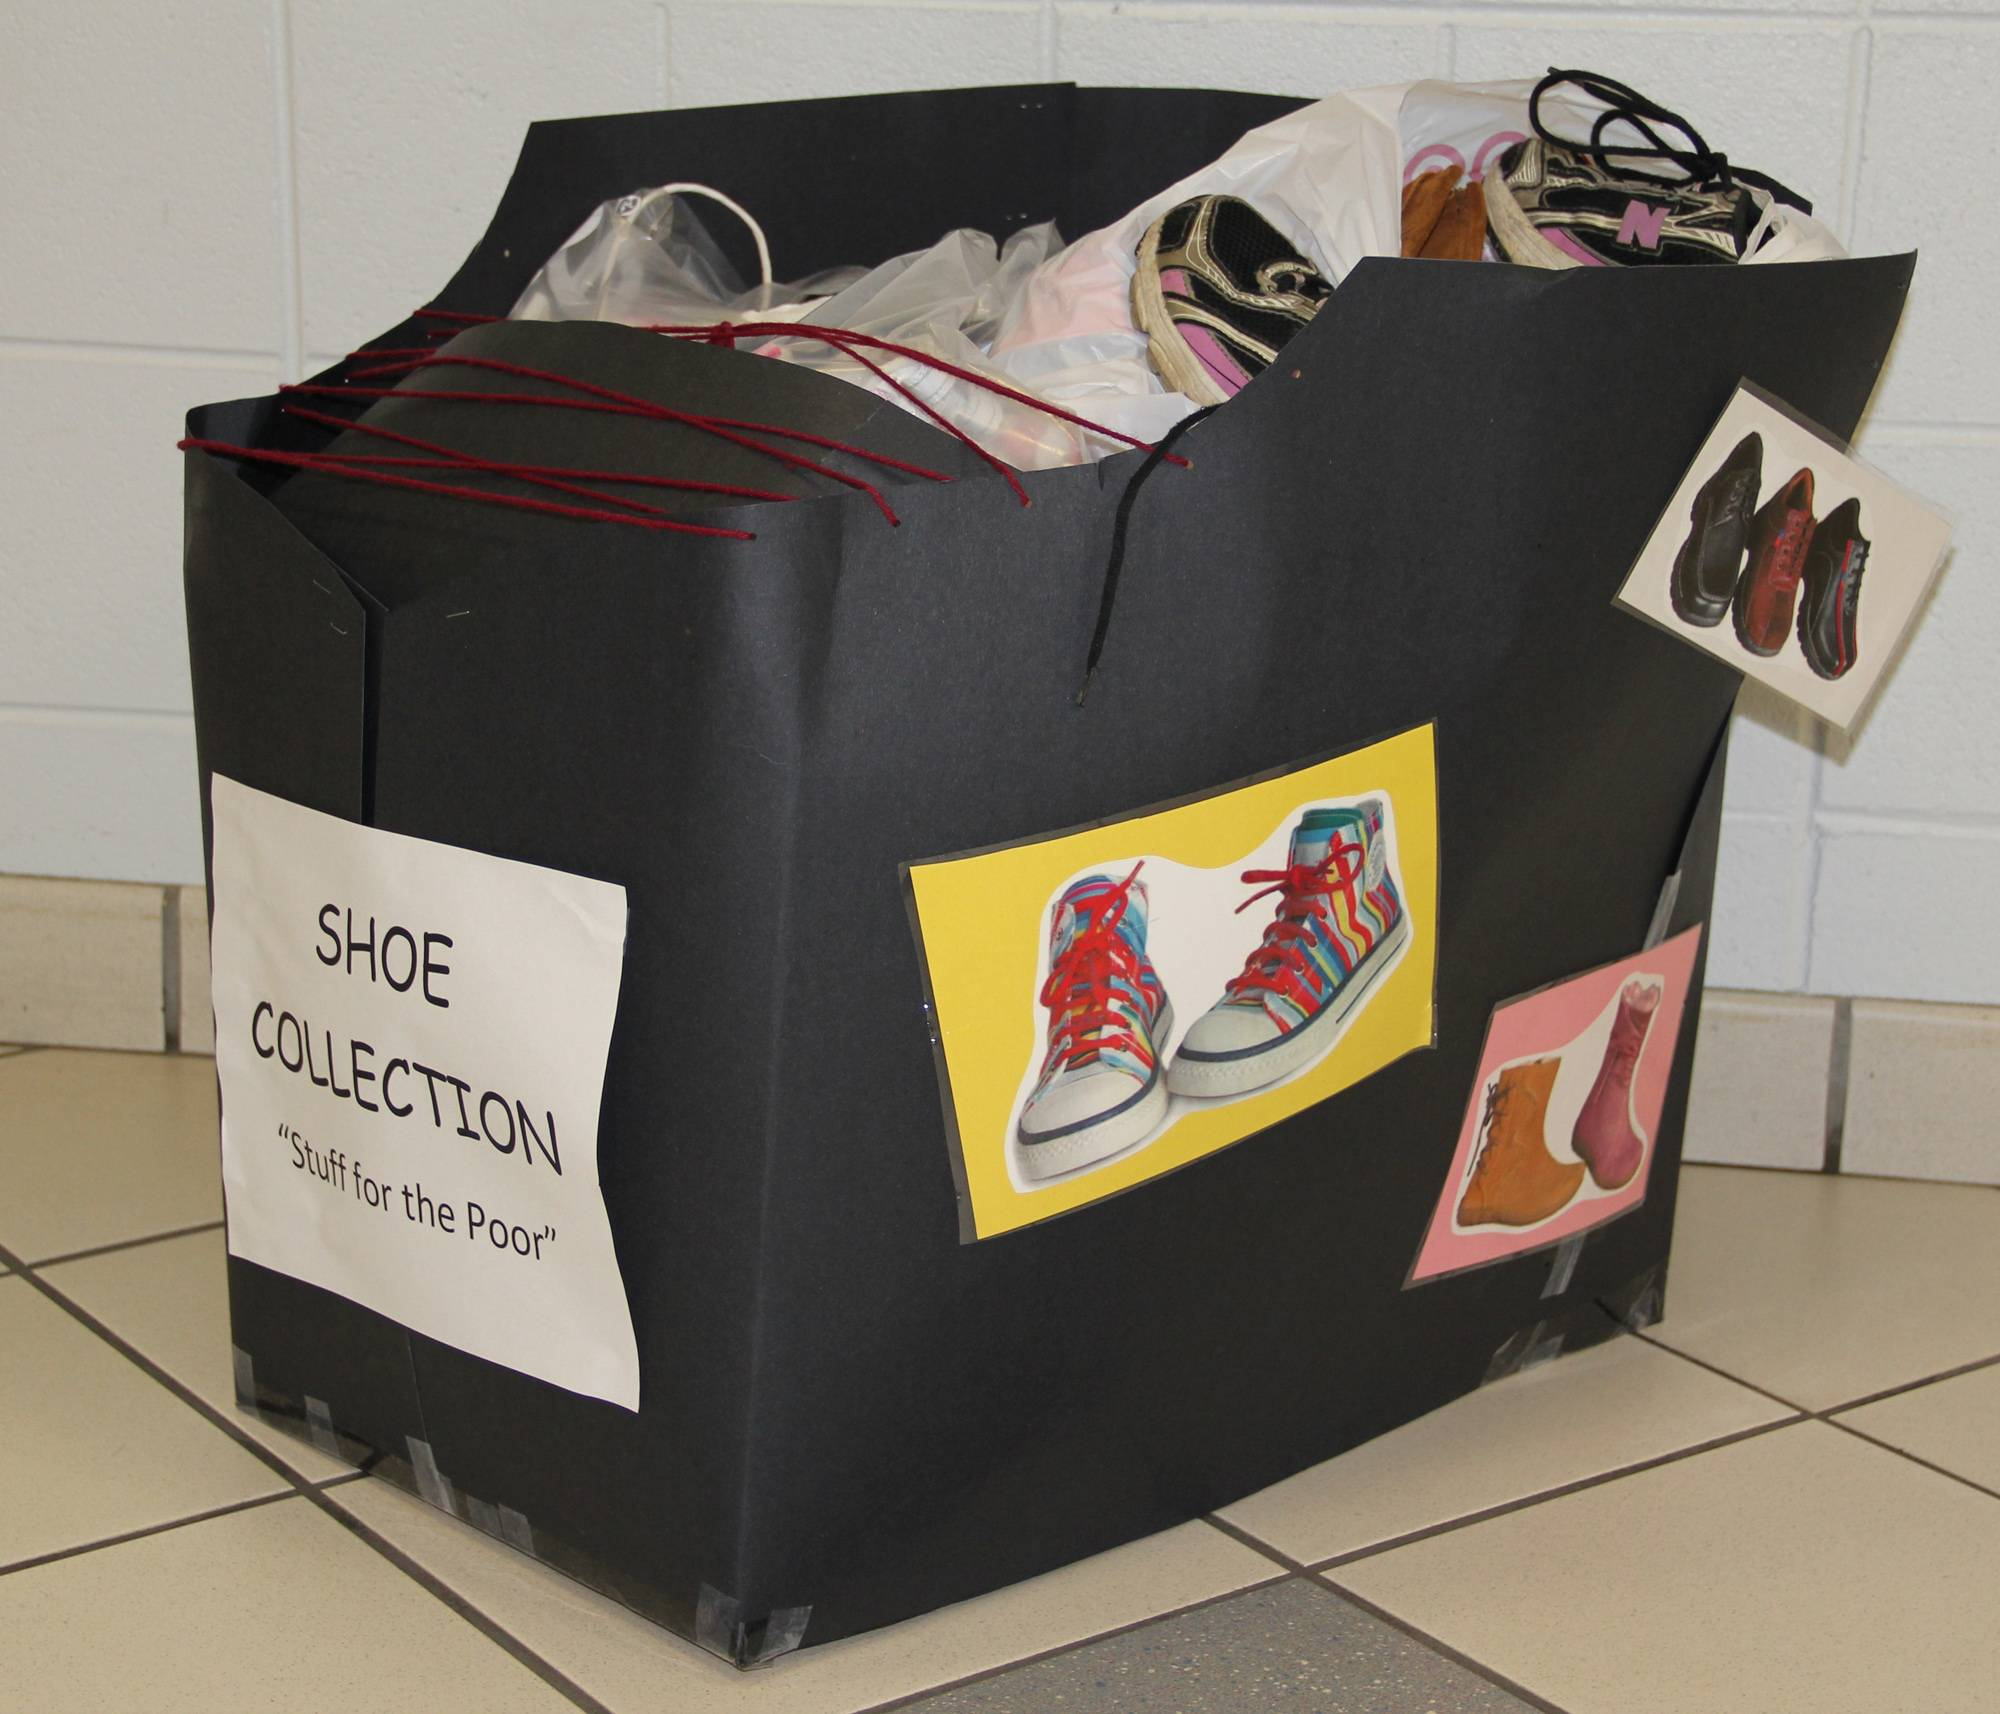 A shoe container from last year's used shoe collection sits filled with donations.